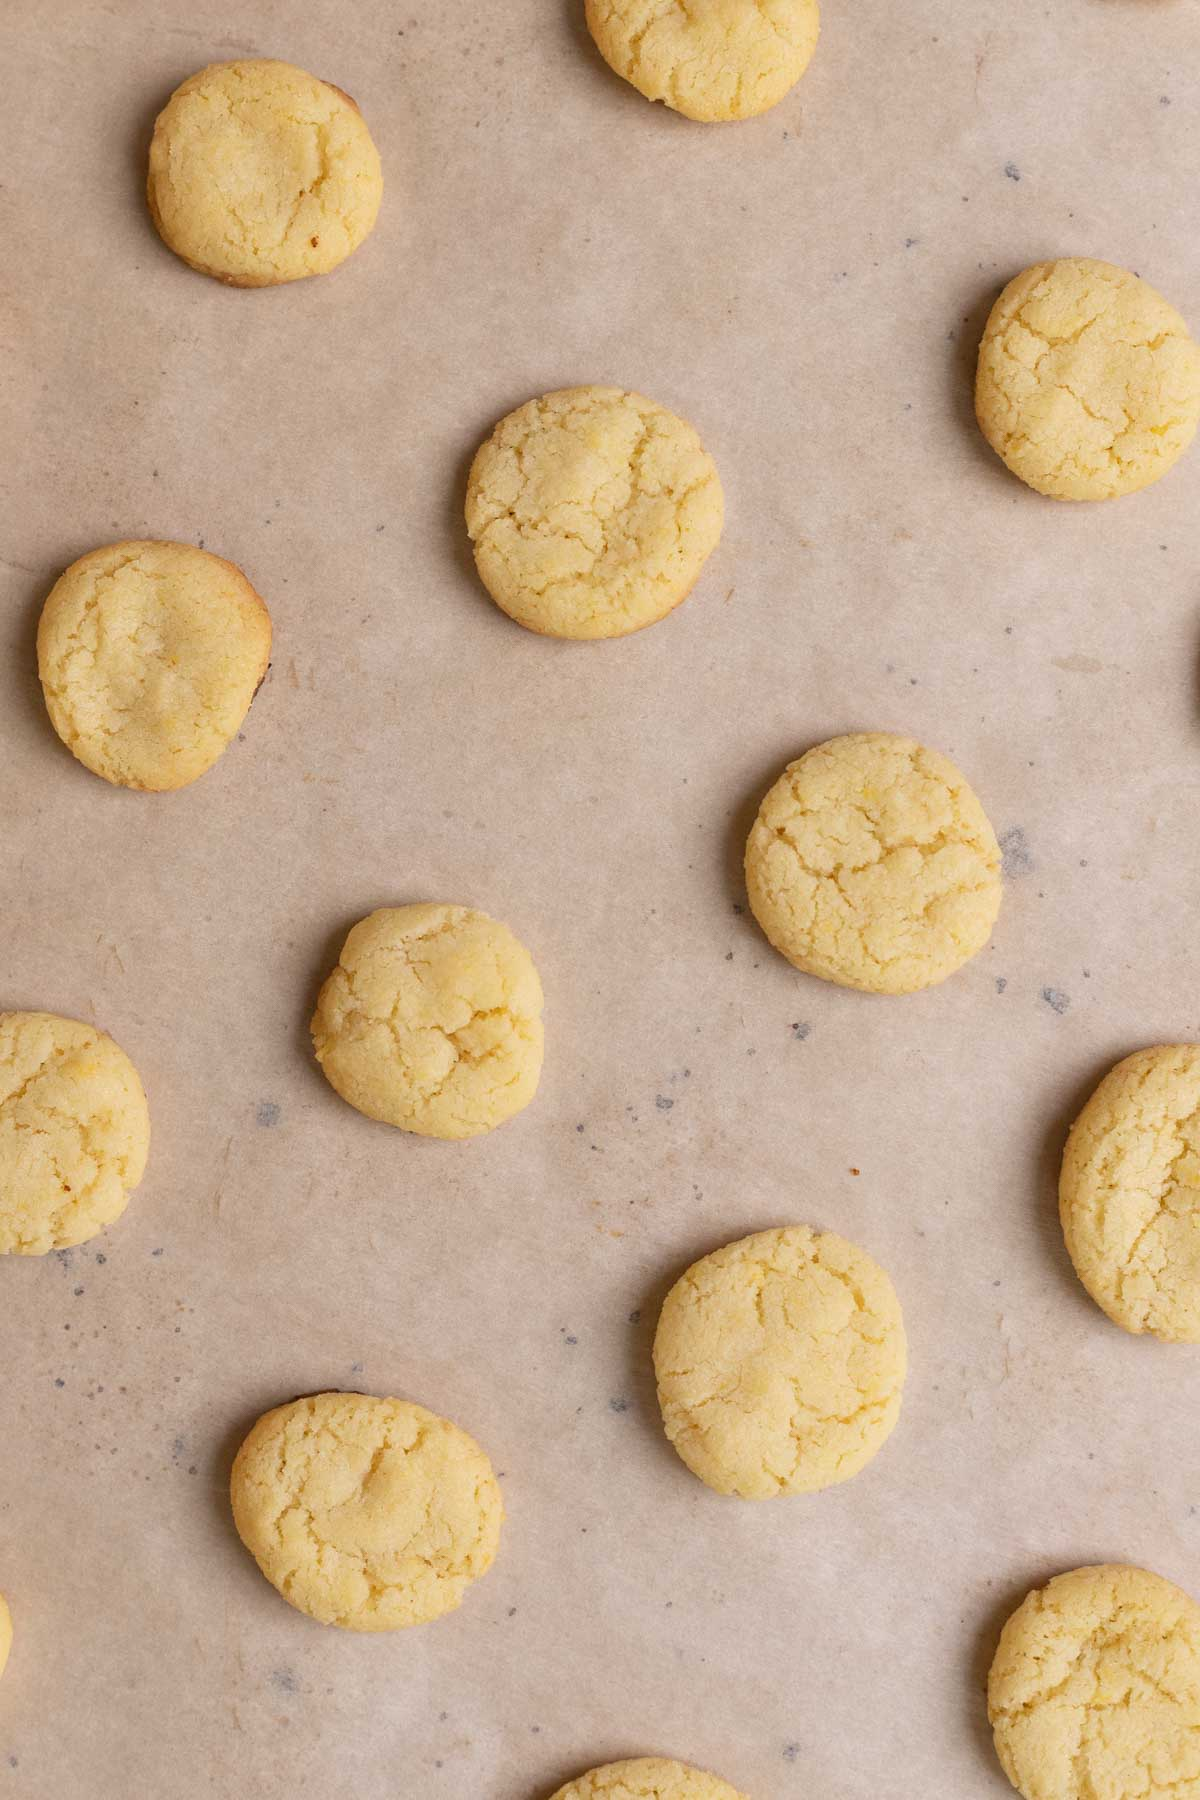 Nilla Wafer Cookies (Copycat) on parchment and baking sheet after baking